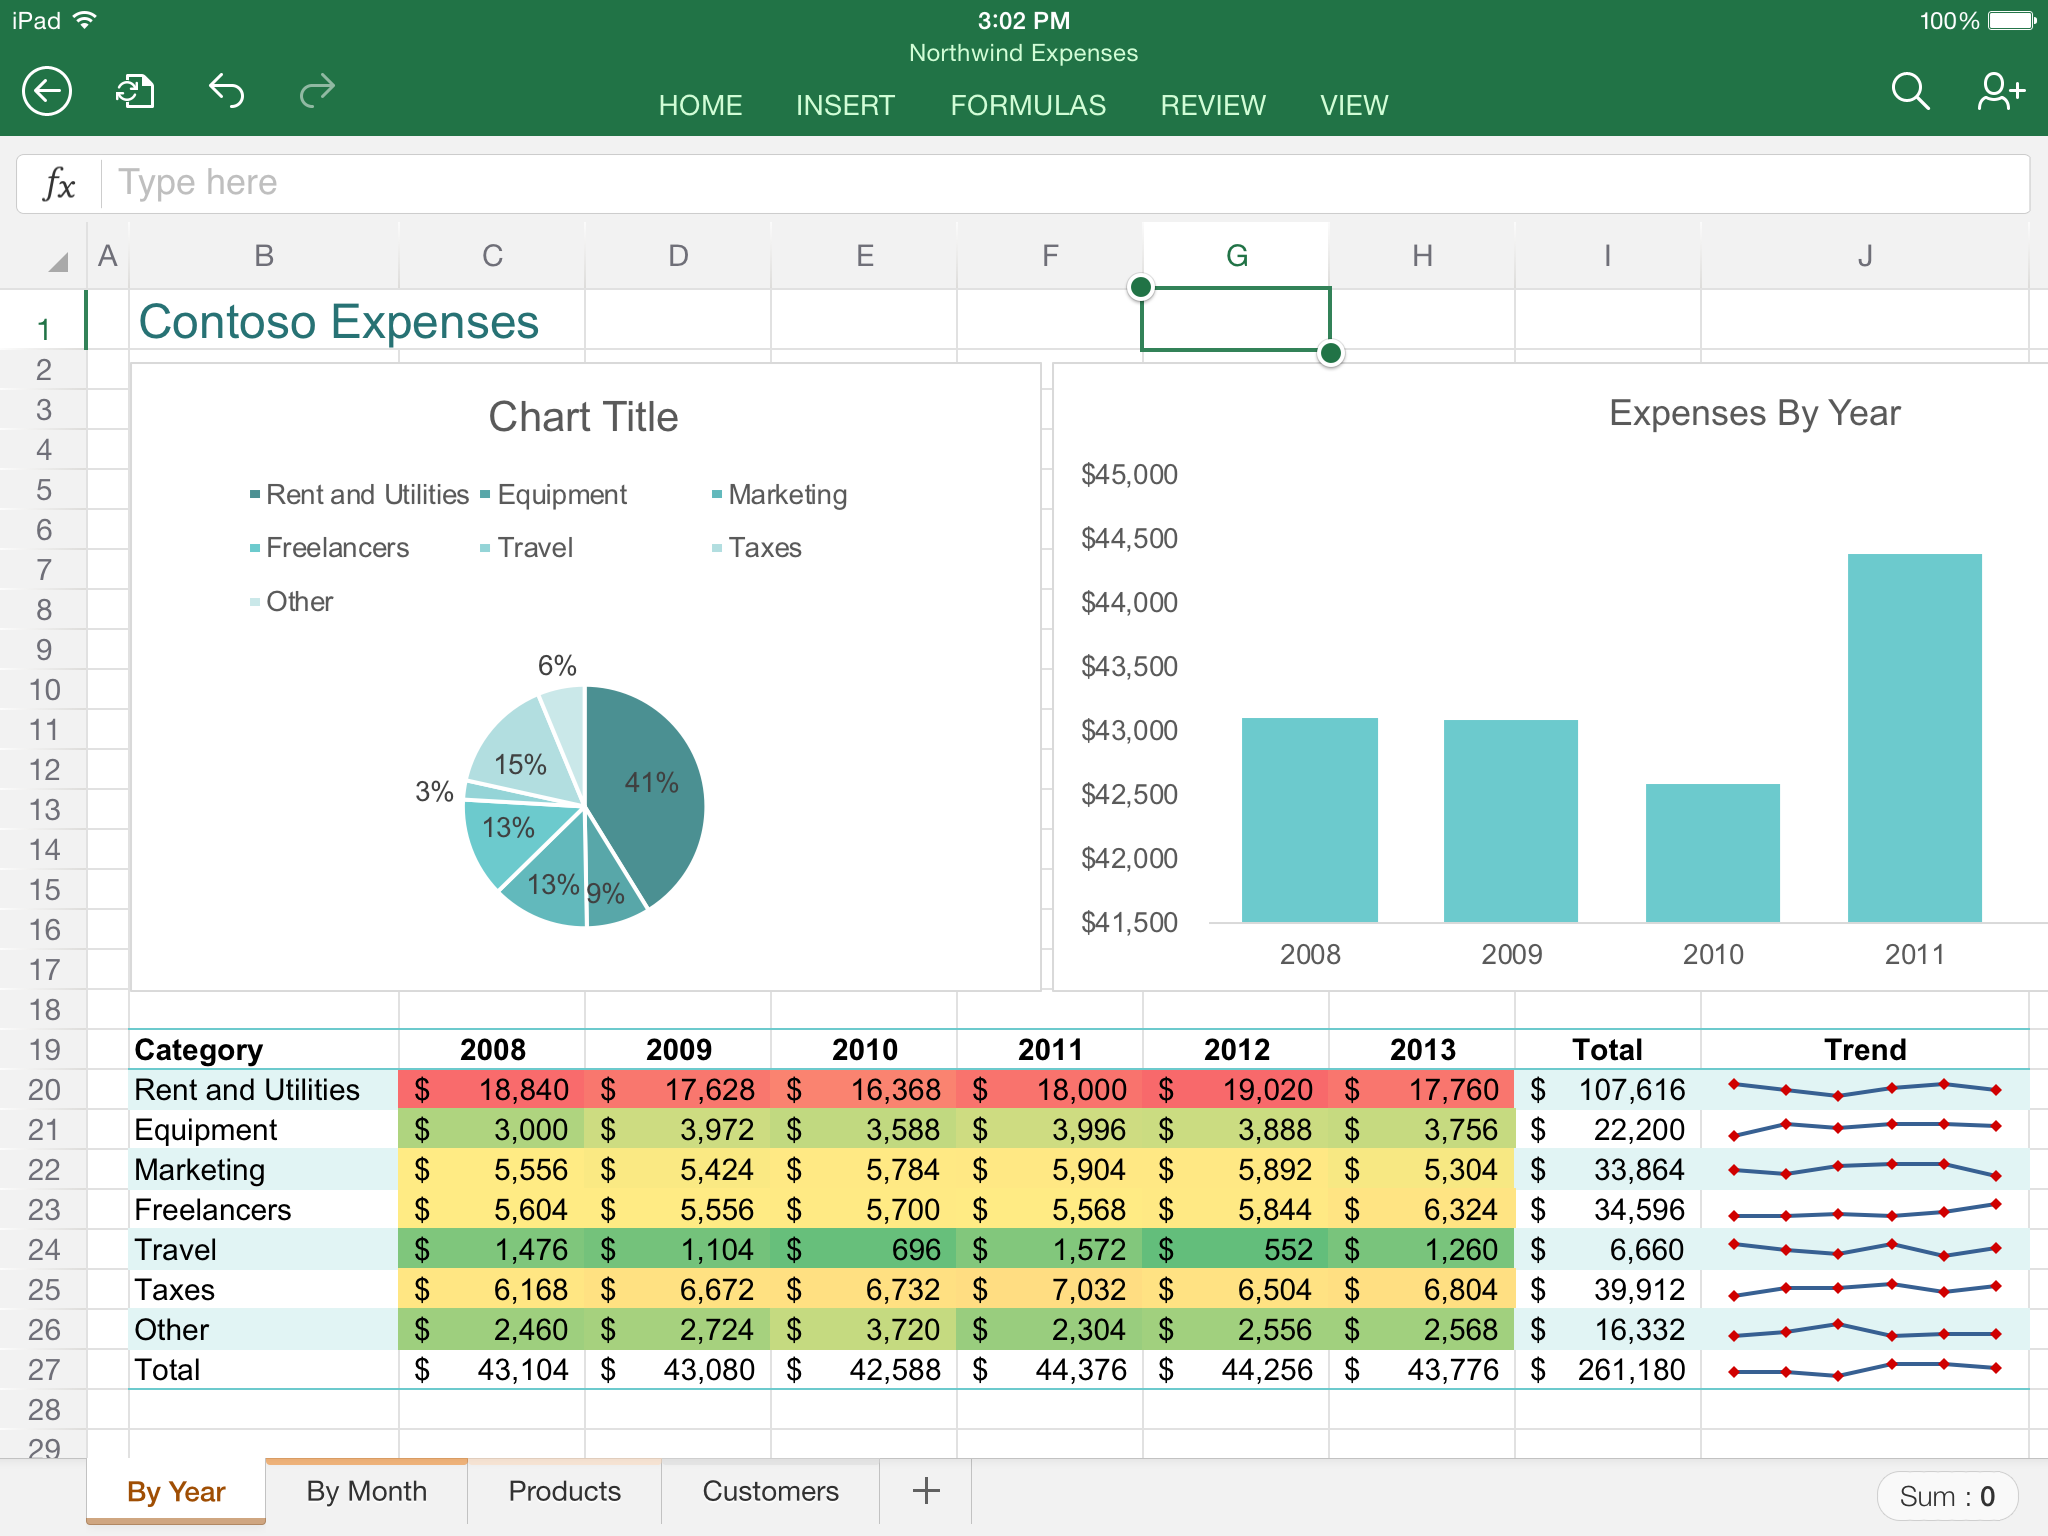 Ediblewildsus  Marvelous App Highlight Excel  Mobile Digital Now With Licious Excel In Action With Nice Duplicate Excel Also If Empty Excel In Addition Repayment Calculator Excel And Scenario Manager Excel  As Well As What Is The Function Of Microsoft Excel Additionally Excel Templates For Accounting Small Business From Youstonybrookedu With Ediblewildsus  Licious App Highlight Excel  Mobile Digital Now With Nice Excel In Action And Marvelous Duplicate Excel Also If Empty Excel In Addition Repayment Calculator Excel From Youstonybrookedu